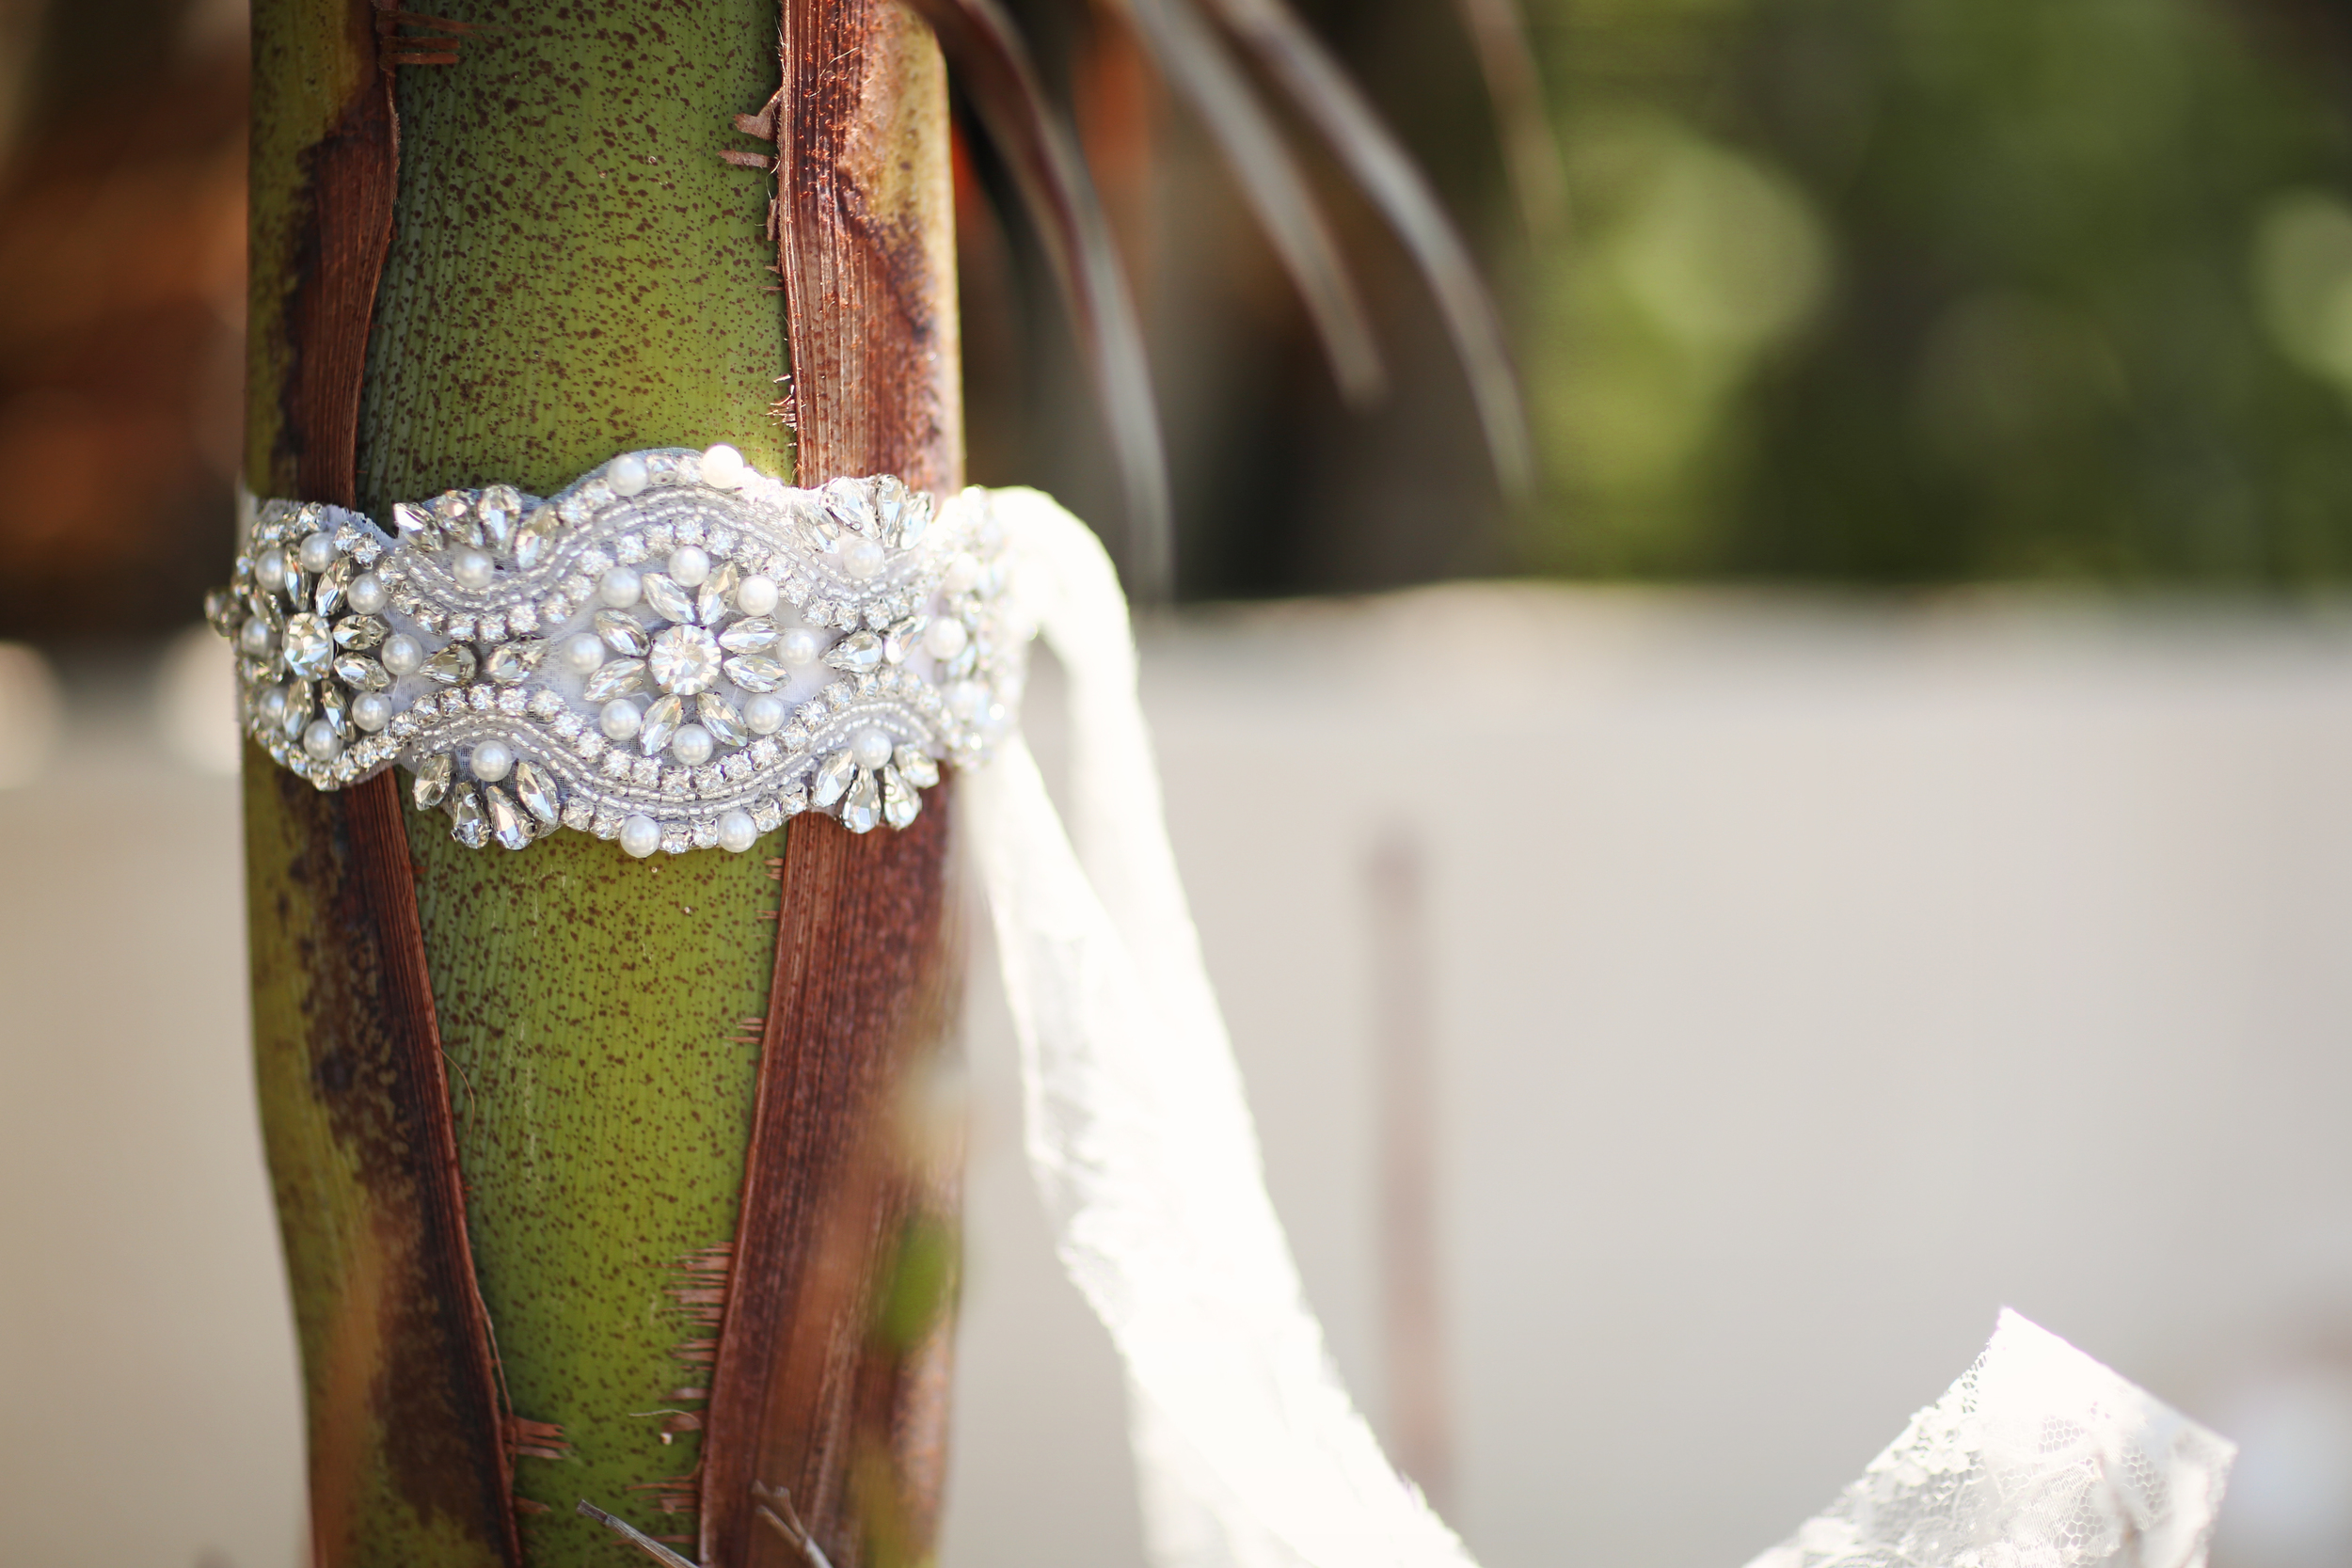 Southern Ever After Pearl, Rhinestone, and Lace Bridal Headband Headpiece // The Overwhelmed Bride Bridal Lifestyle + Wedding Blog // Southern California Wedding Planner